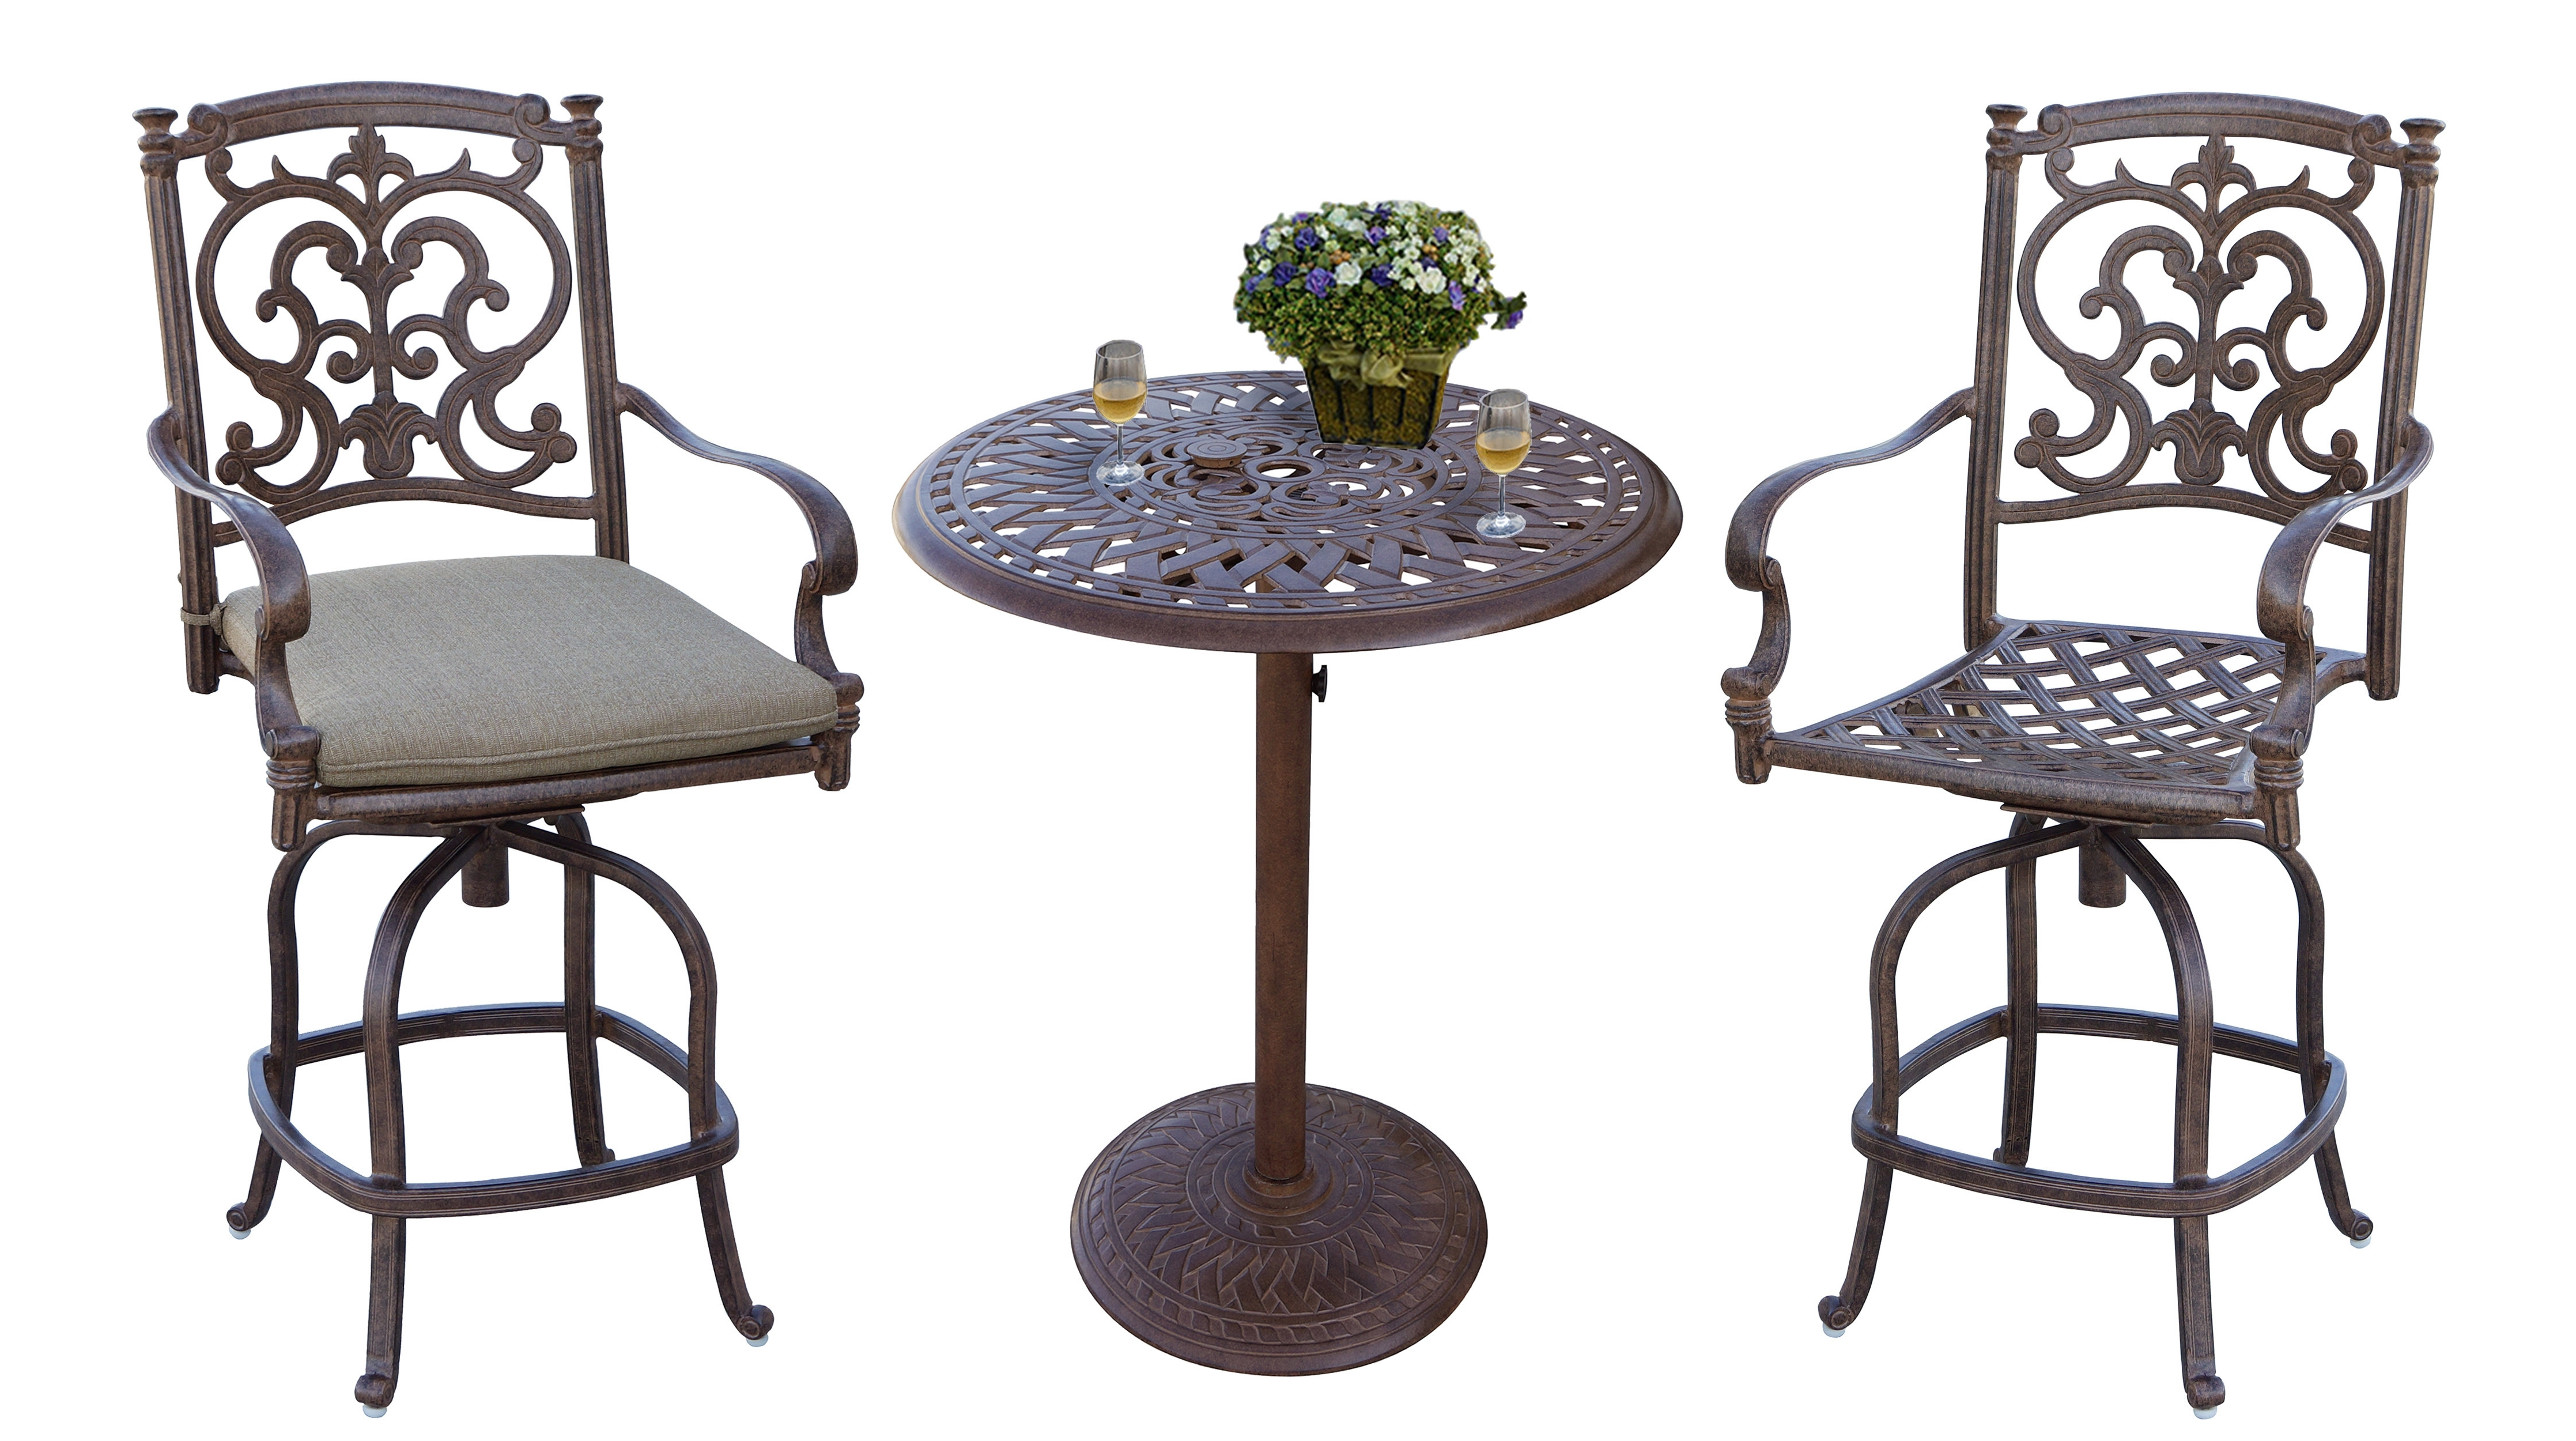 Astoria Grand Palazzo Sasso 3 Piece Counter Height Bar Dining Set Pertaining To Newest Palazzo 3 Piece Dining Table Sets (View 16 of 25)